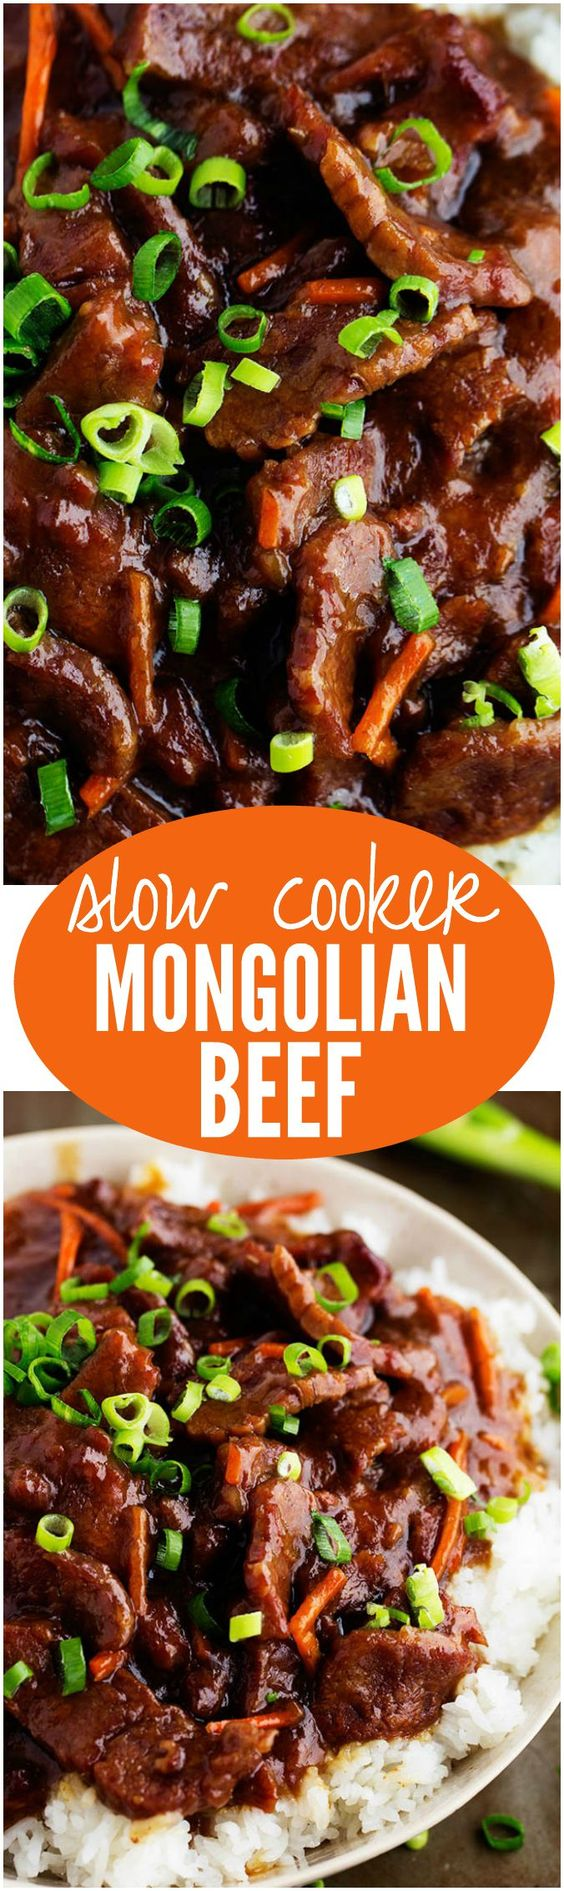 how to cook mongolian rice